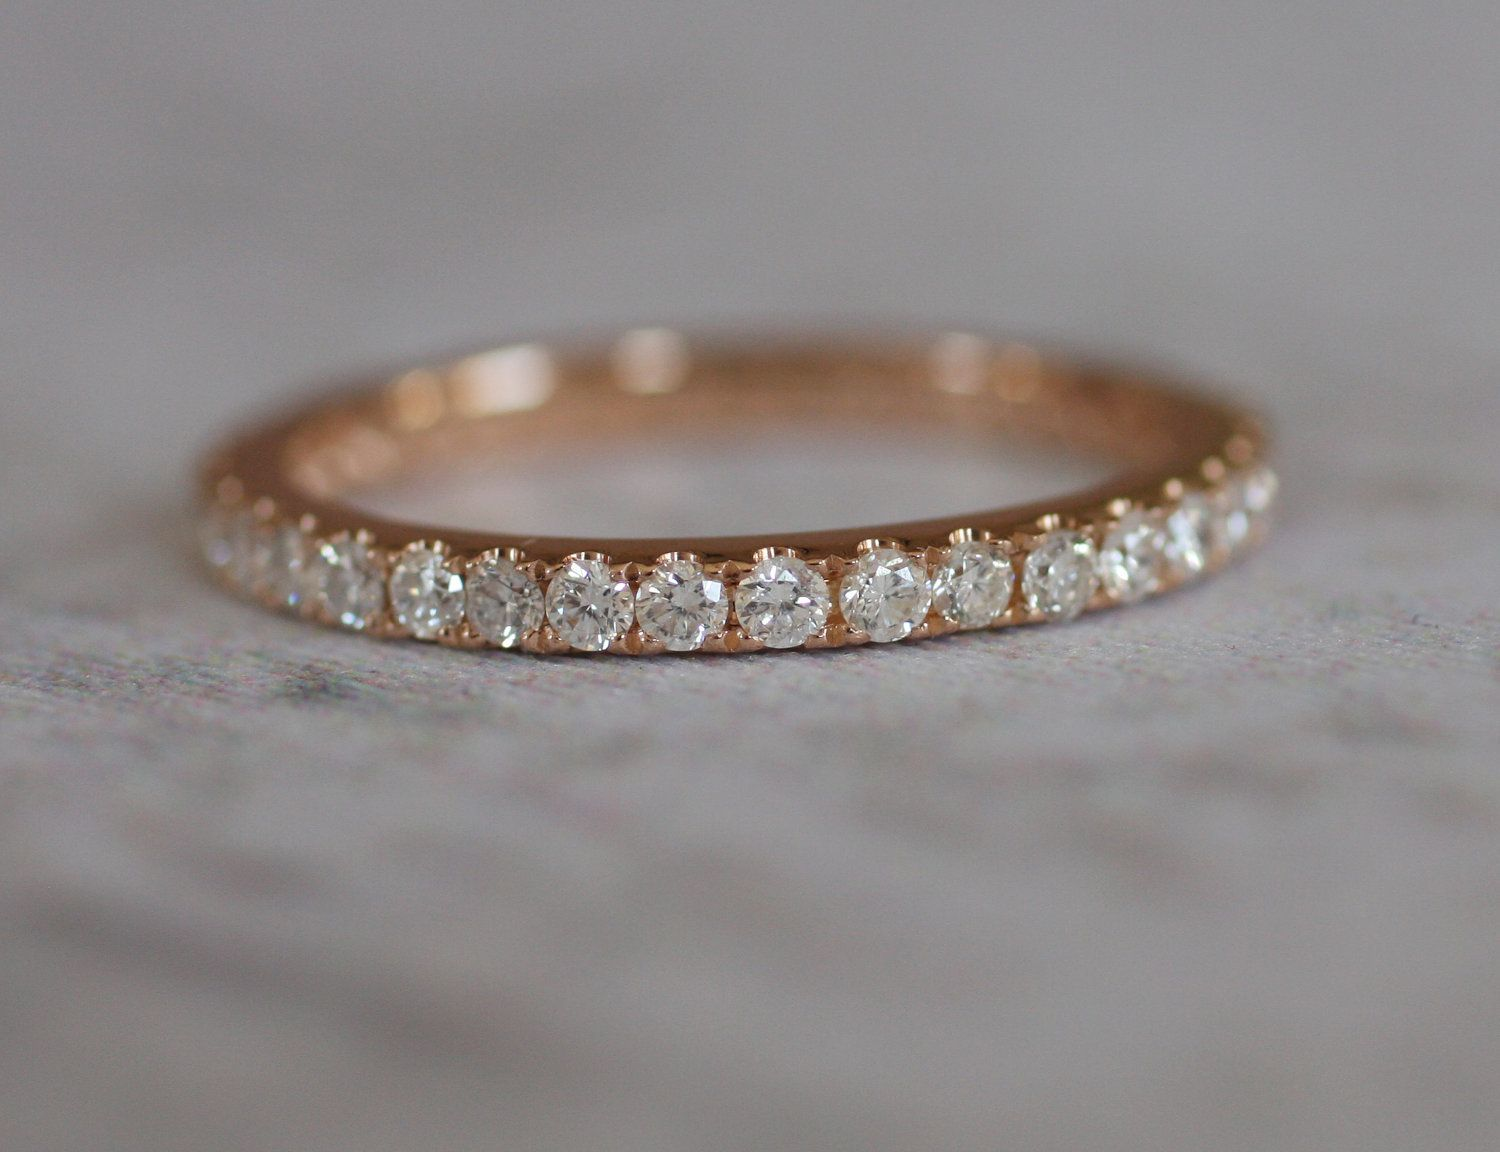 A circlet of sparkling diamonds. 2mm full eternity diamond band - rose, white or yellow gold -made to order.